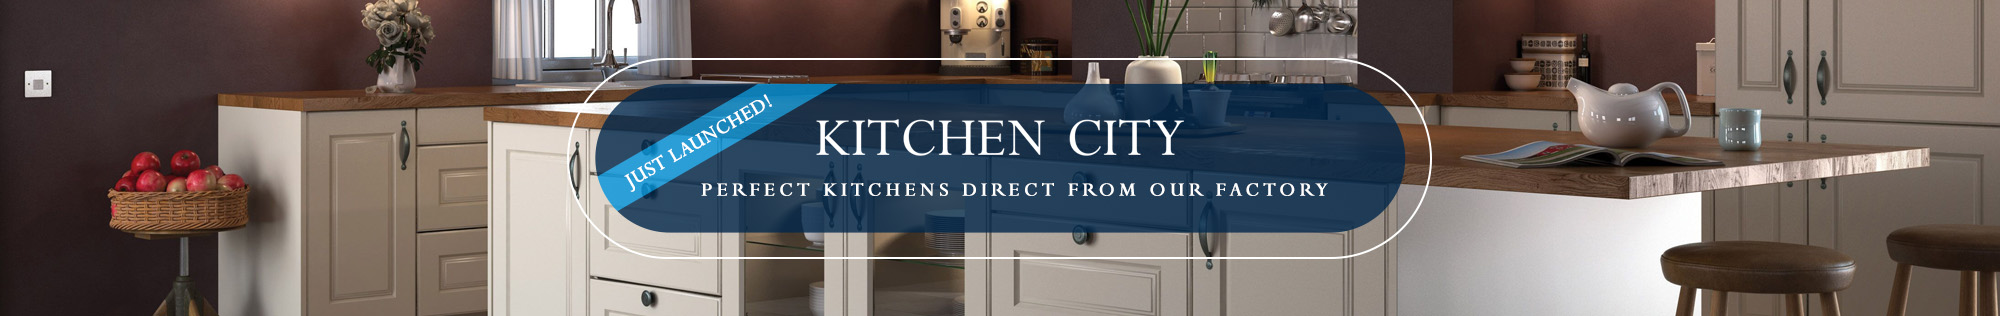 Kitchen City - Just Launched! Perfect kitchens direct from out factory